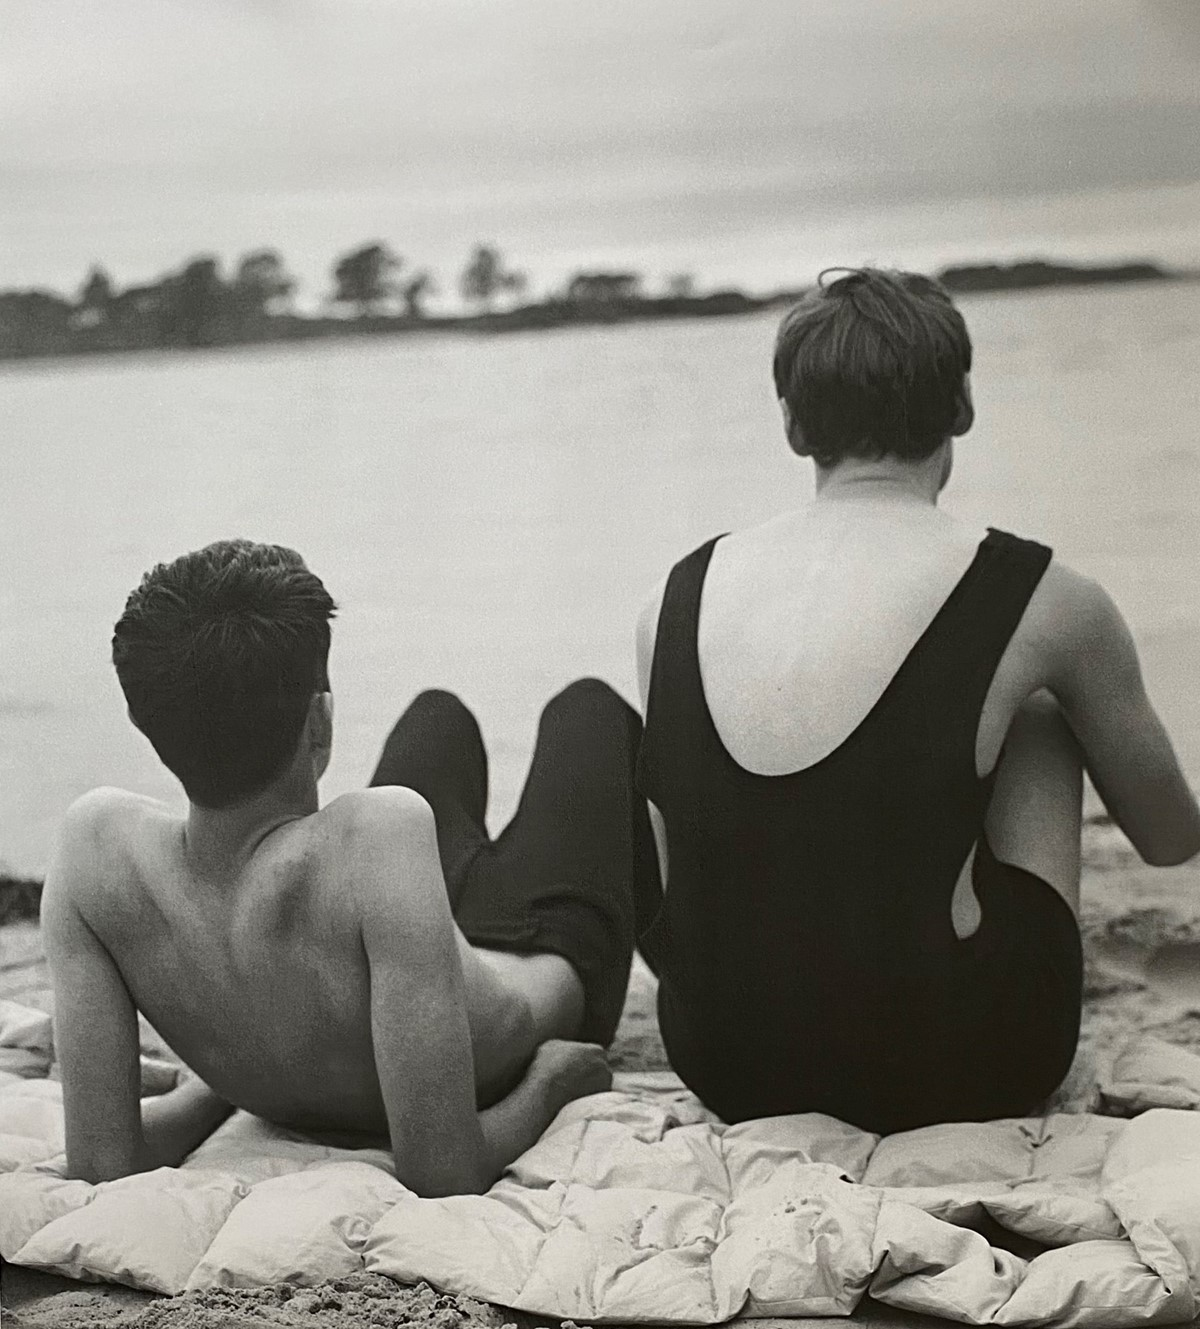 Yann Faucher's New Book Captures Male Friendship on the Beaches of Normandy